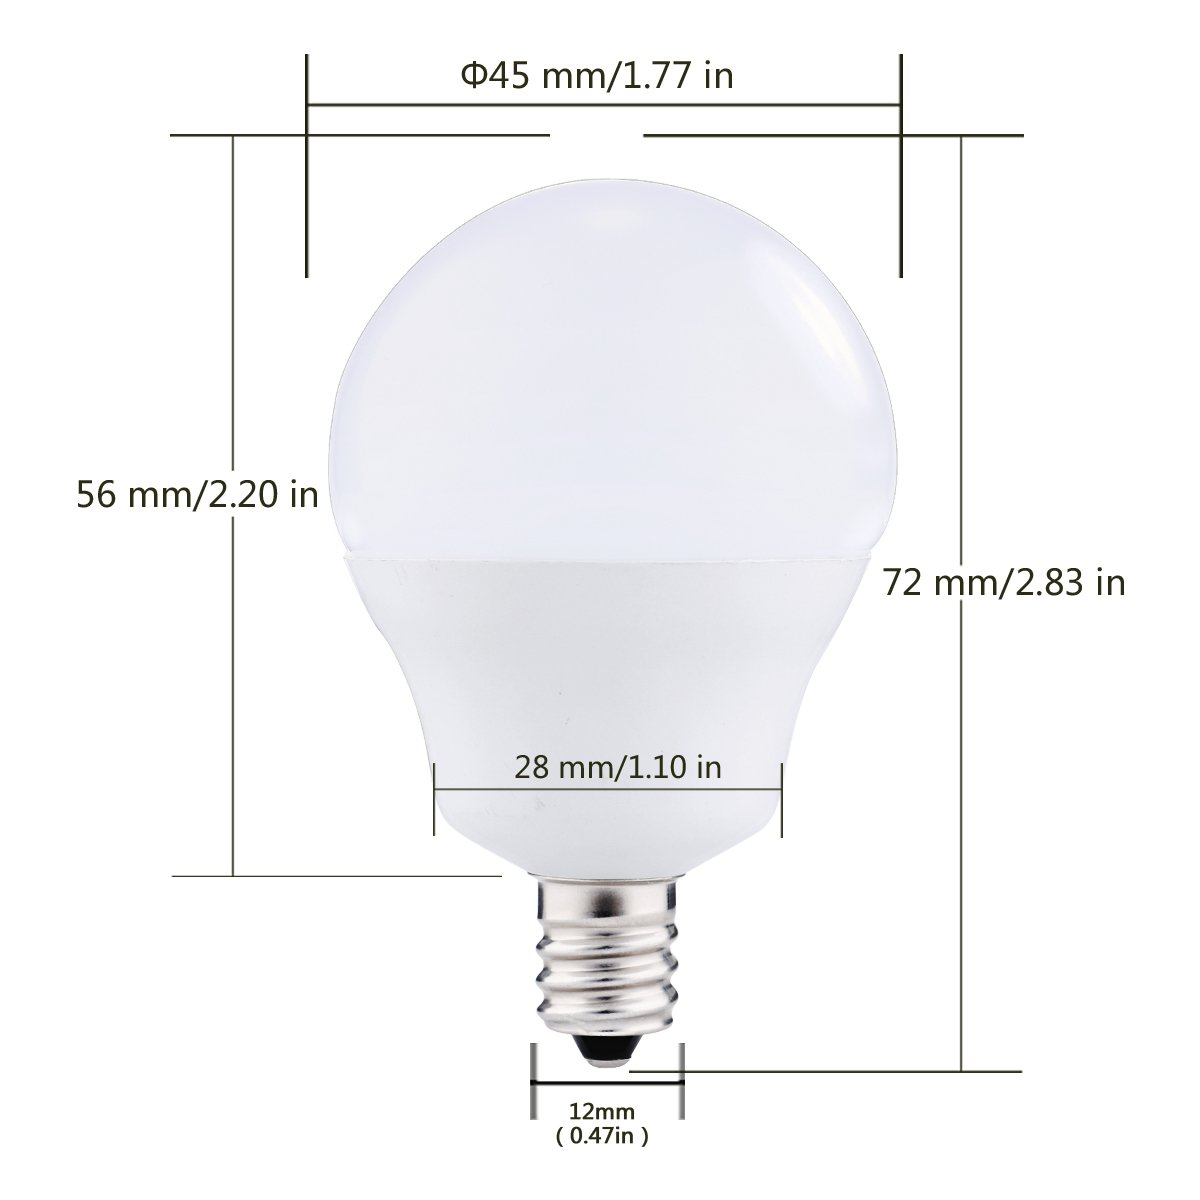 JandCase E12 Light Sensor Candelabra Bulb, Dusk to Dawn LED Bulbs for Porch, Daylight White(5000K), 40W Equivalent, 5W, 450lm, G14 Automatic Indoor/Outdoor Security Lights for Patio, Hallway, 4 Pack by JandCase (Image #2)